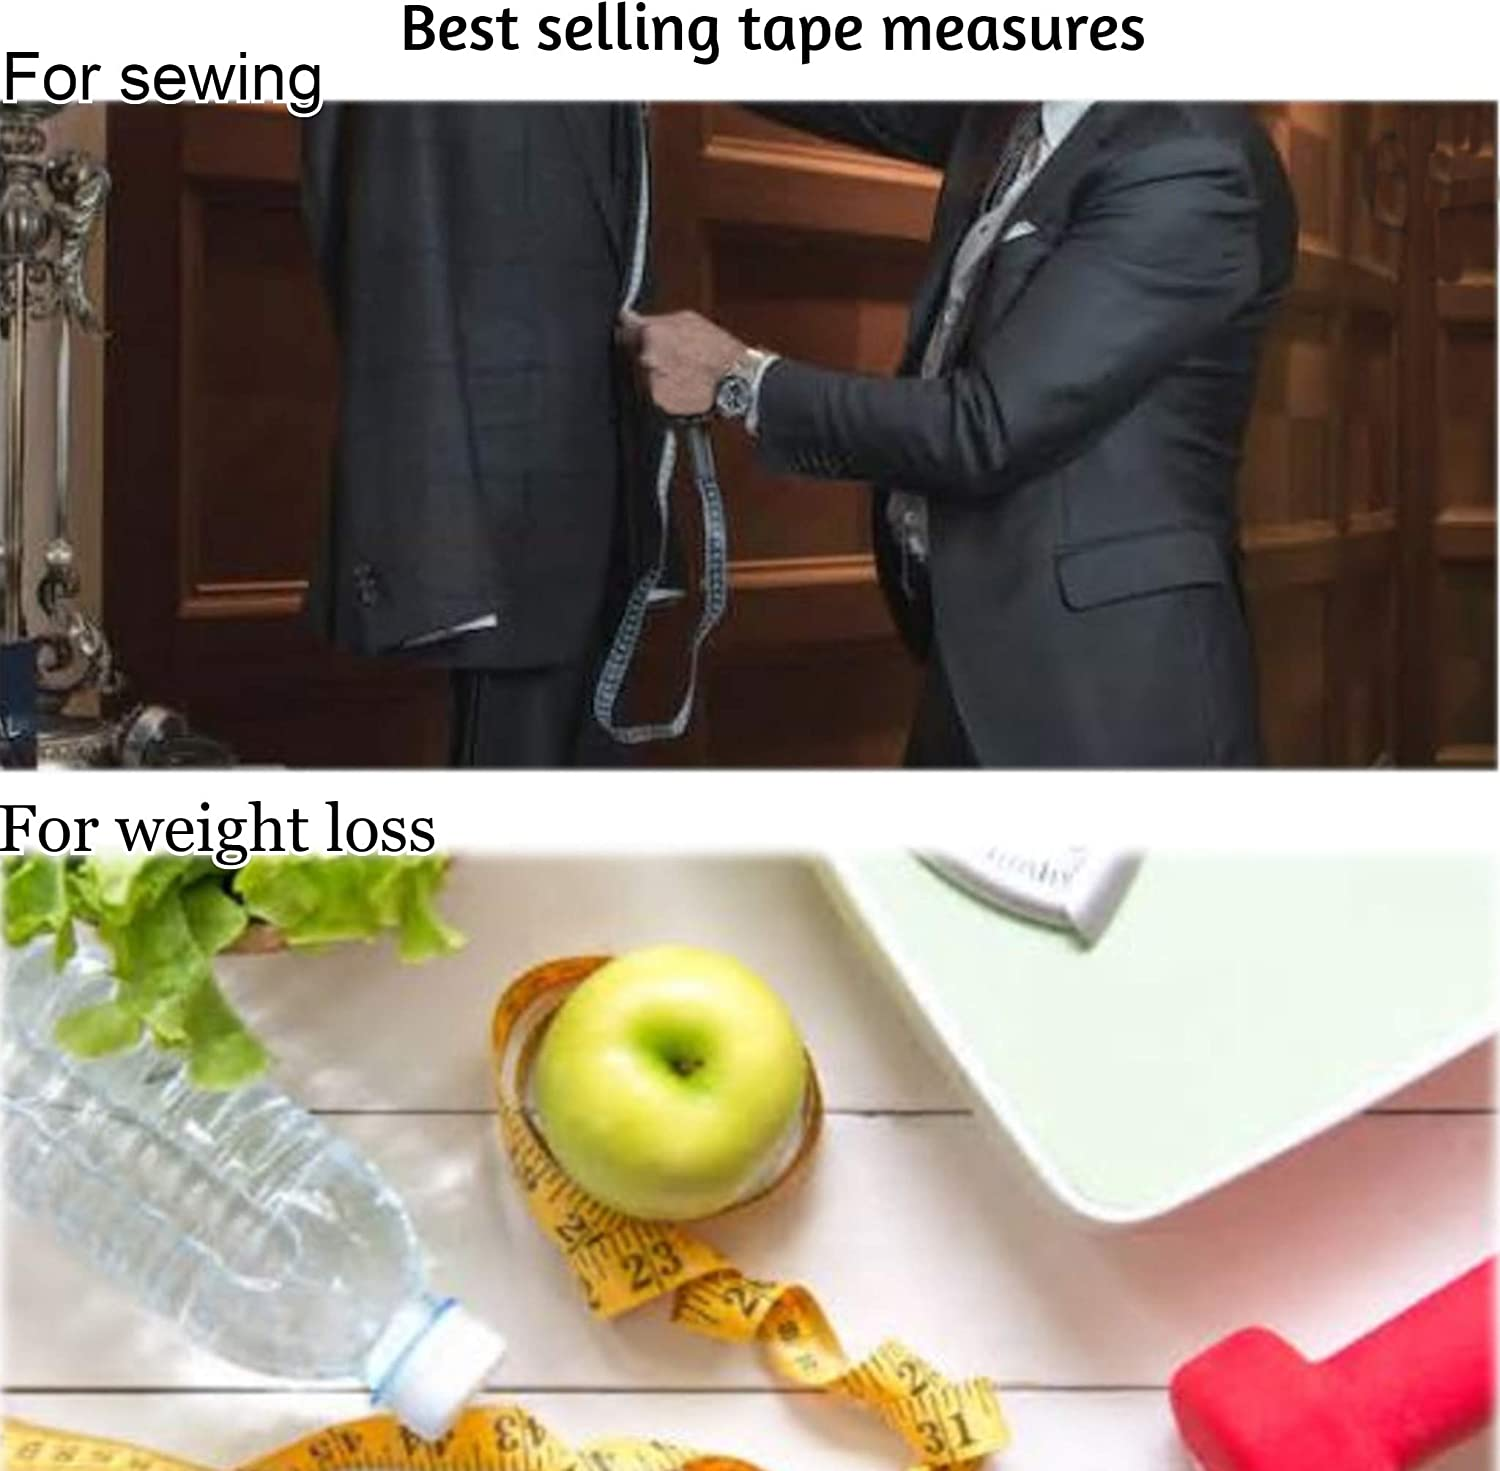 White Soft Tape Measure Double Scale Body Sewing Flexible Ruler for Weight Loss Medical Body Measurement Sewing Tailor Craft Vinyl Ruler Has Centimetre Scale on Each Side 60-inch